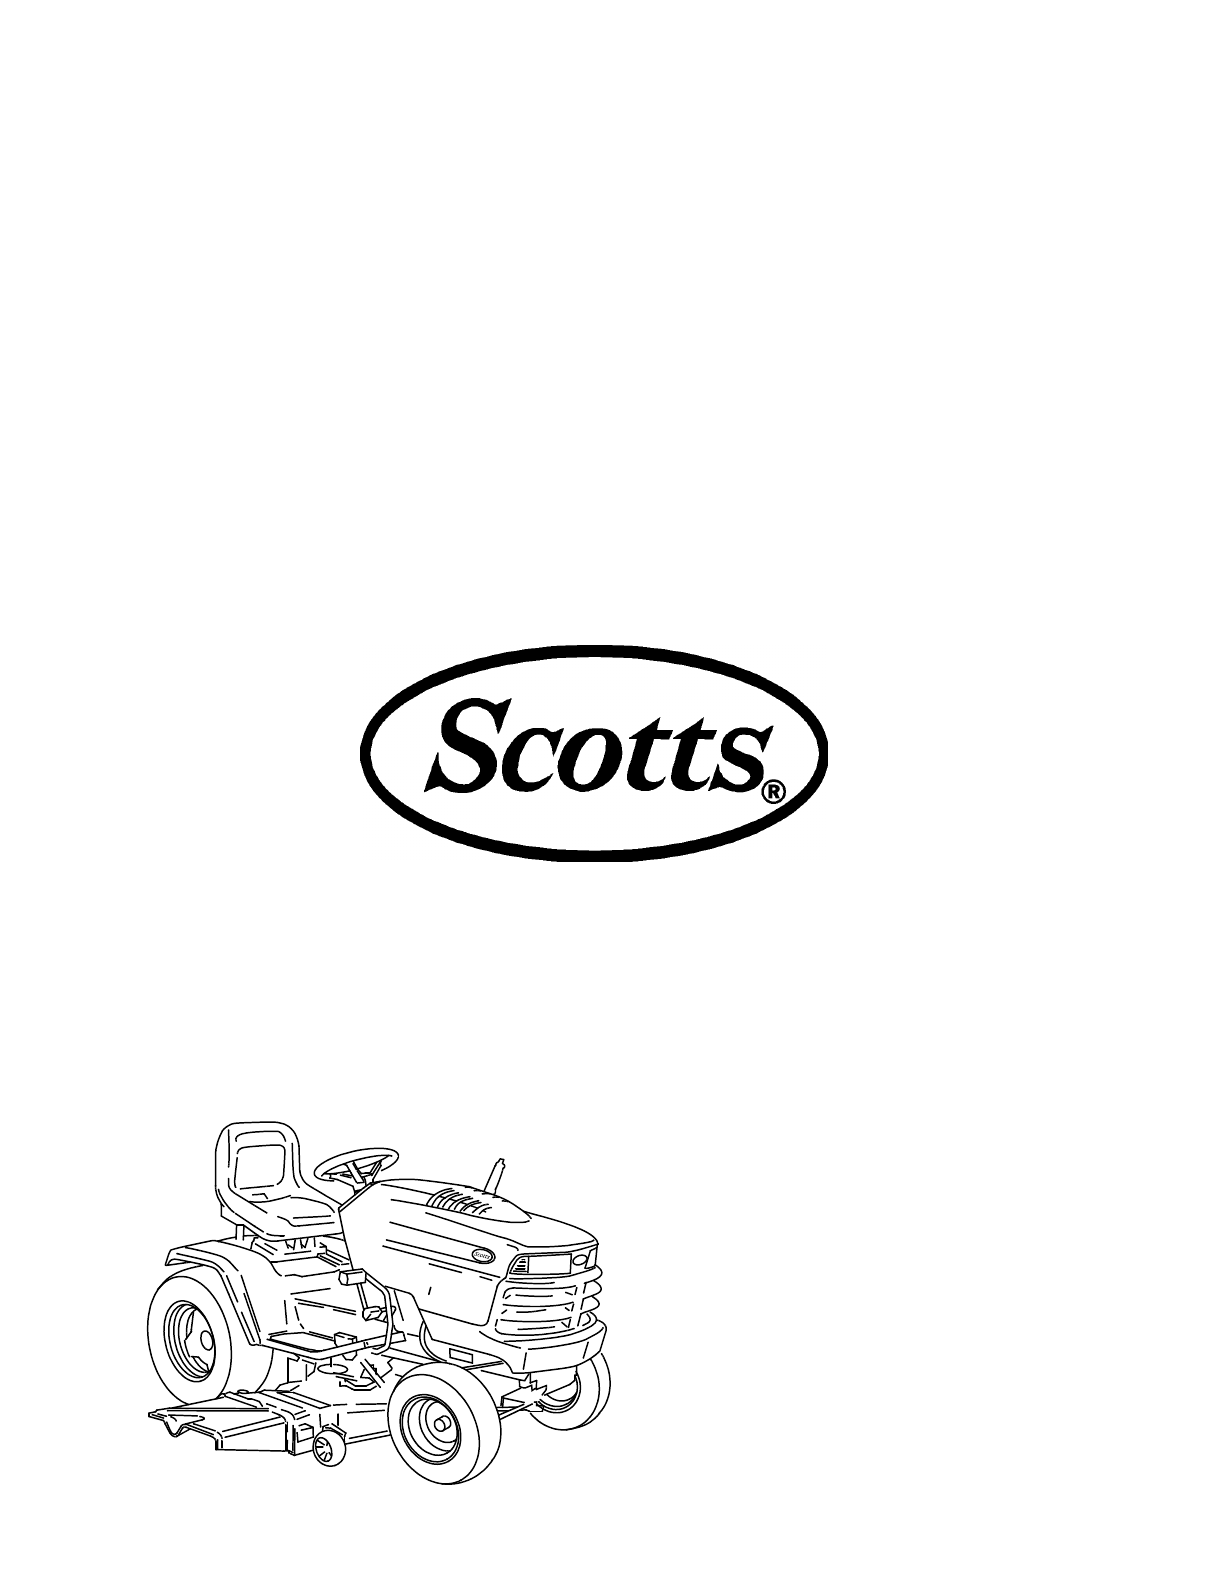 74d6465d 604f df44 71f6 2ff6ec9f391a bg1 scotts lawn mower s2048, s2554 user guide manualsonline com scotts wiring diagrams free at edmiracle.co